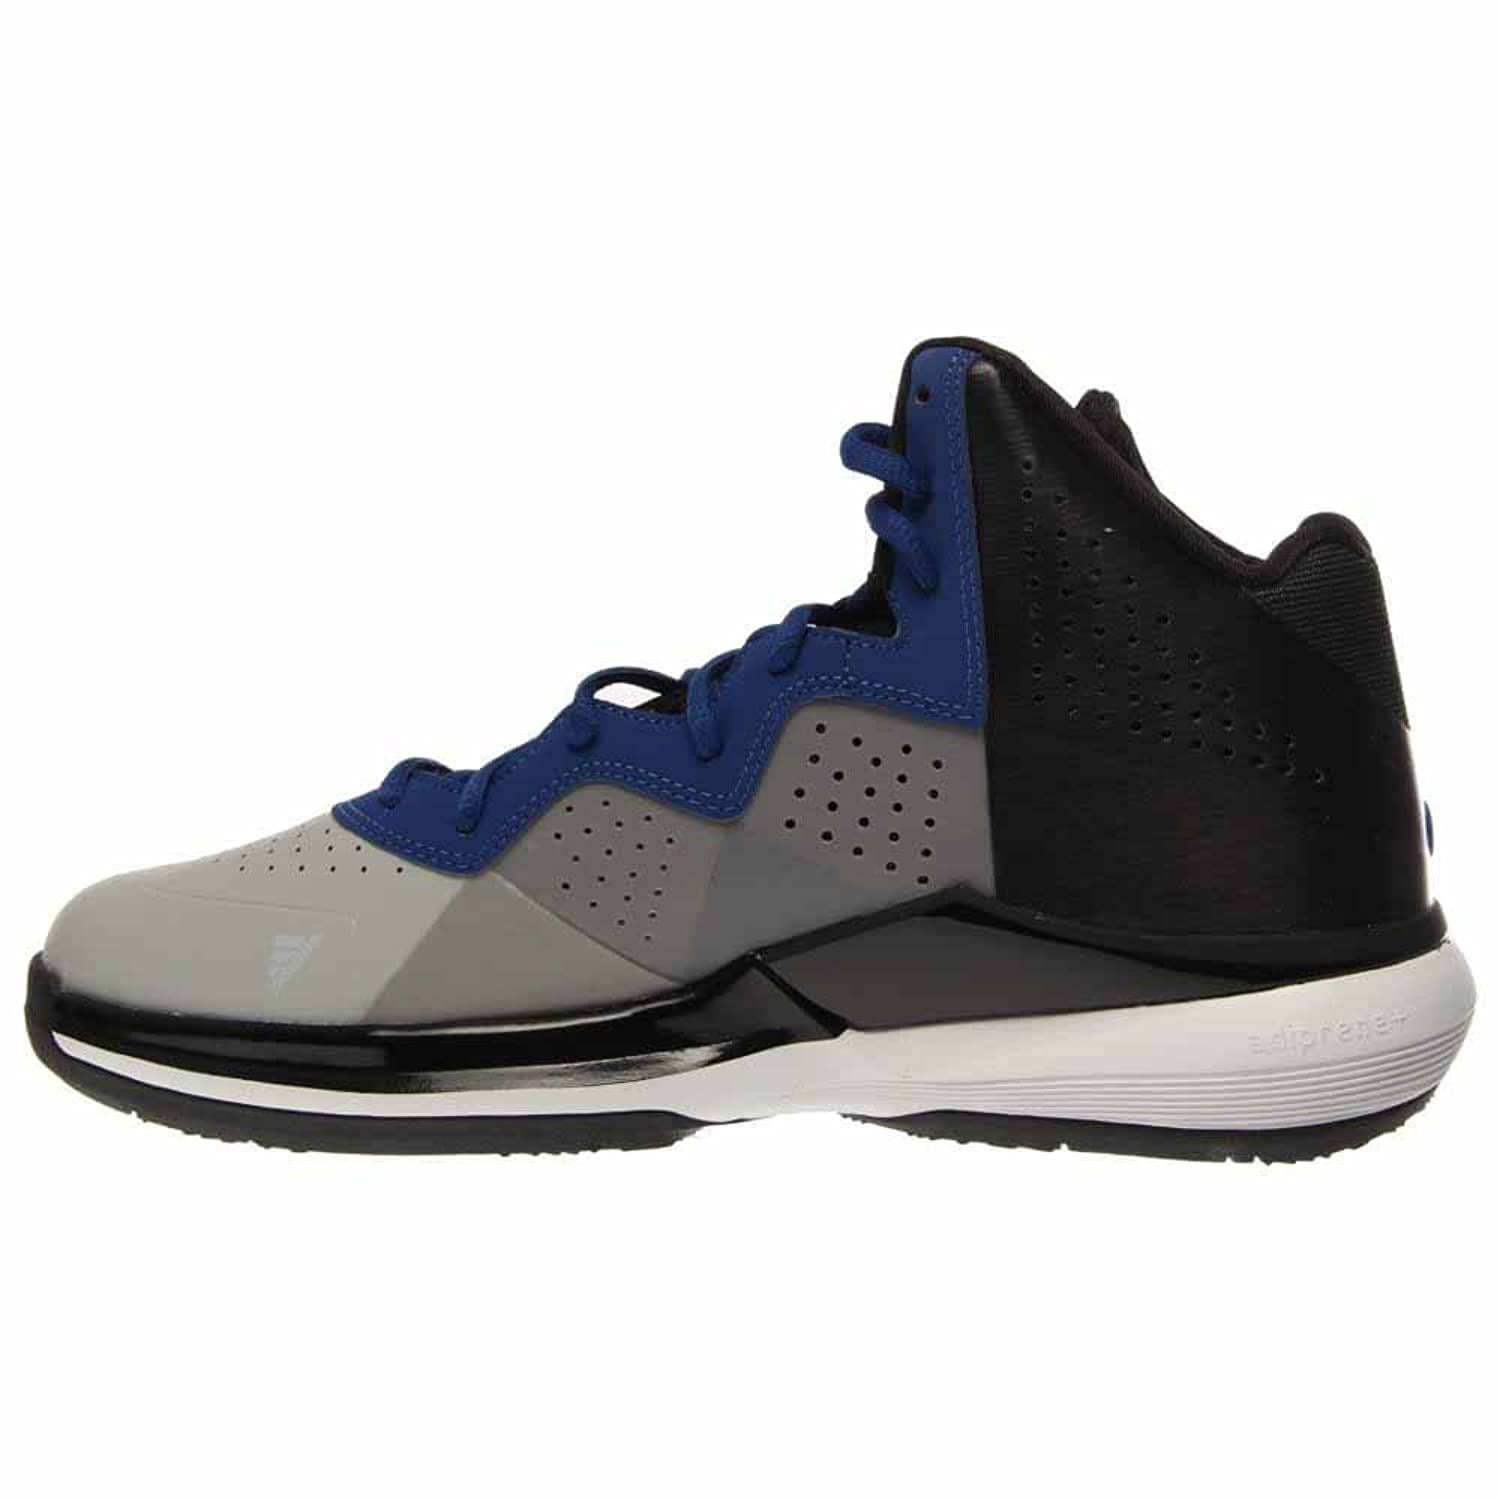 Mens Adidas Men's Intimidate Basketball Shoes Retail Size 47